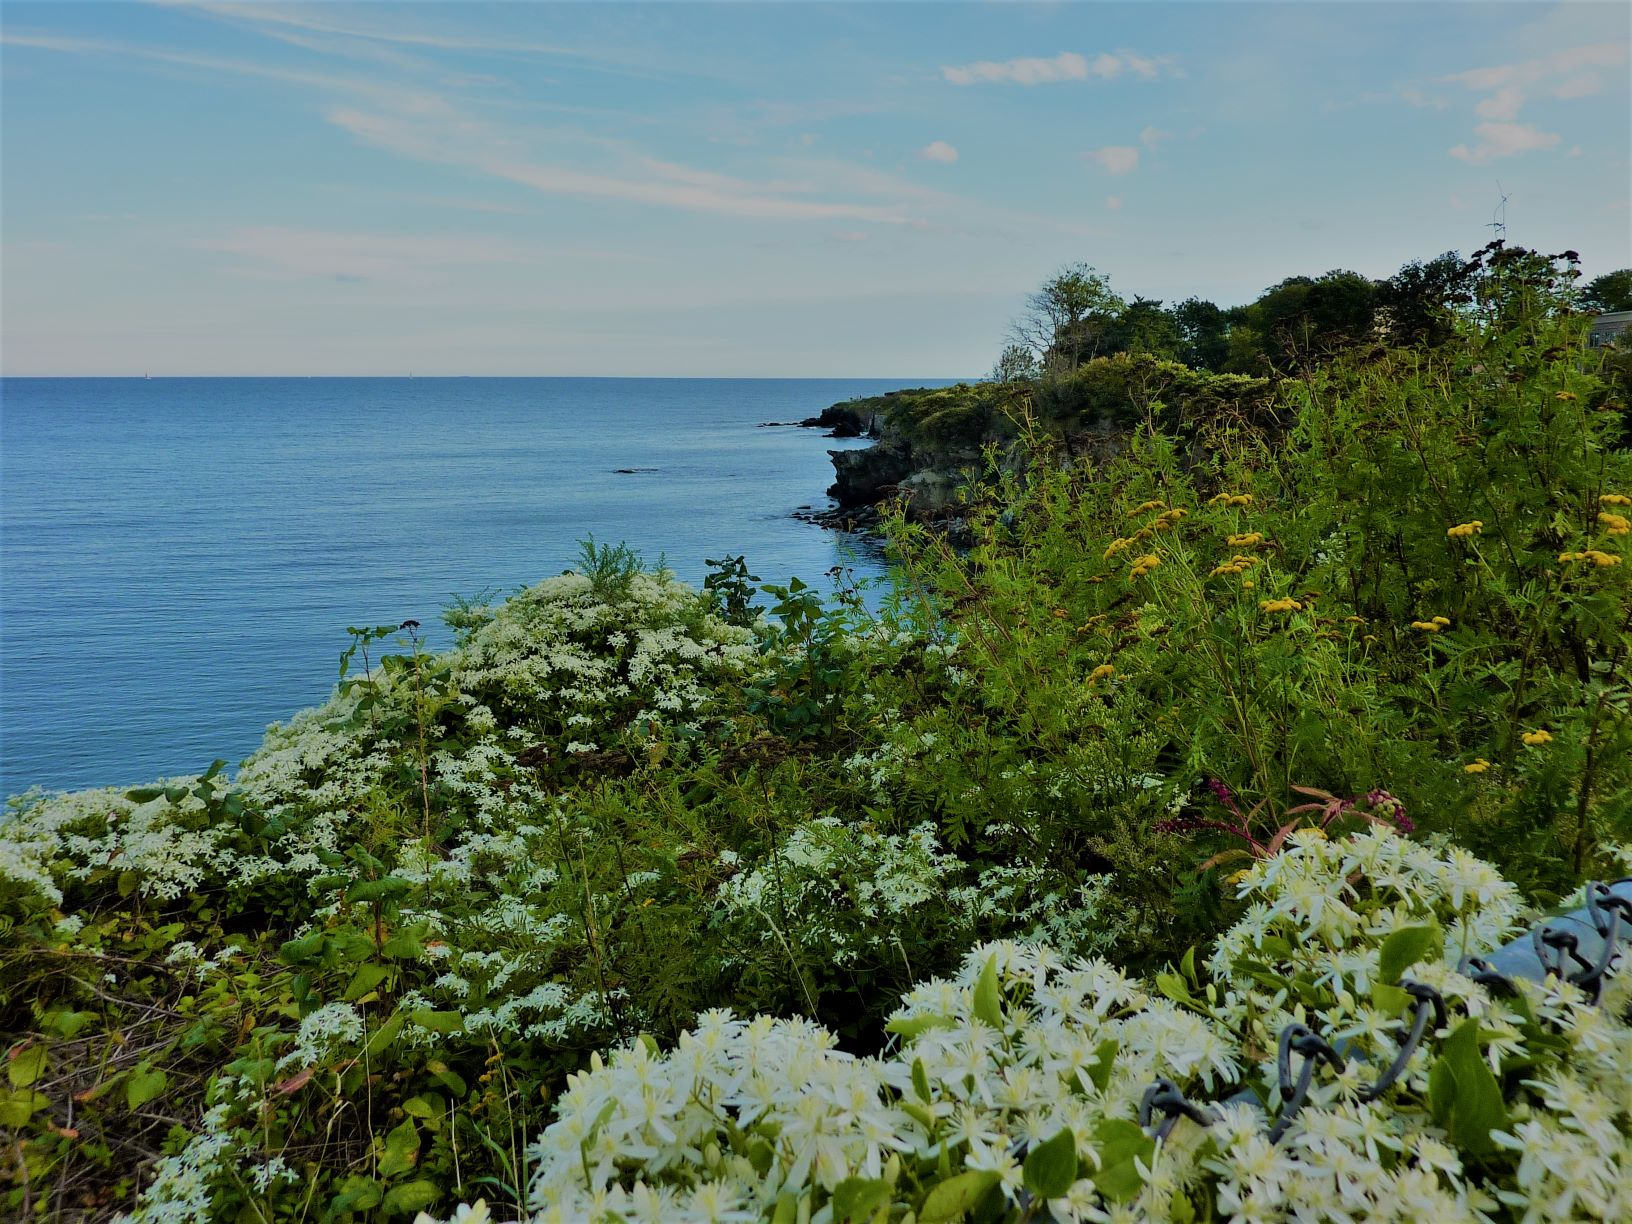 Flowers, ocean and a sense of renewal walking The Cliff Walk in Newport, R.I.